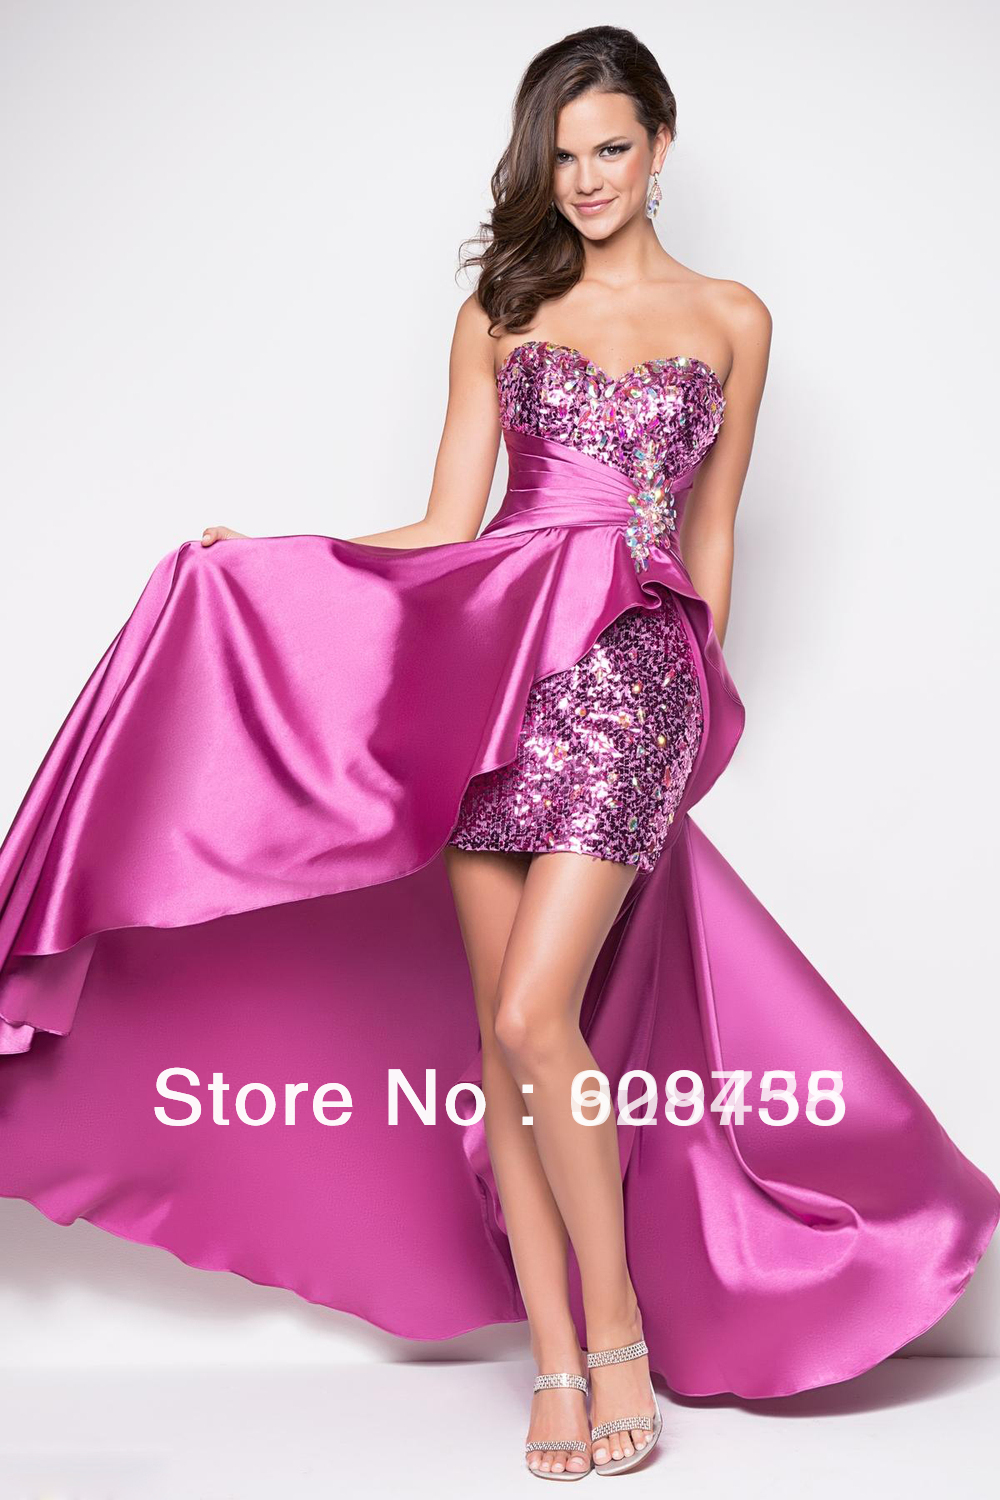 Tulle Prom Dresses Original Ugly Usa Dress Online Sheath Not Find ...